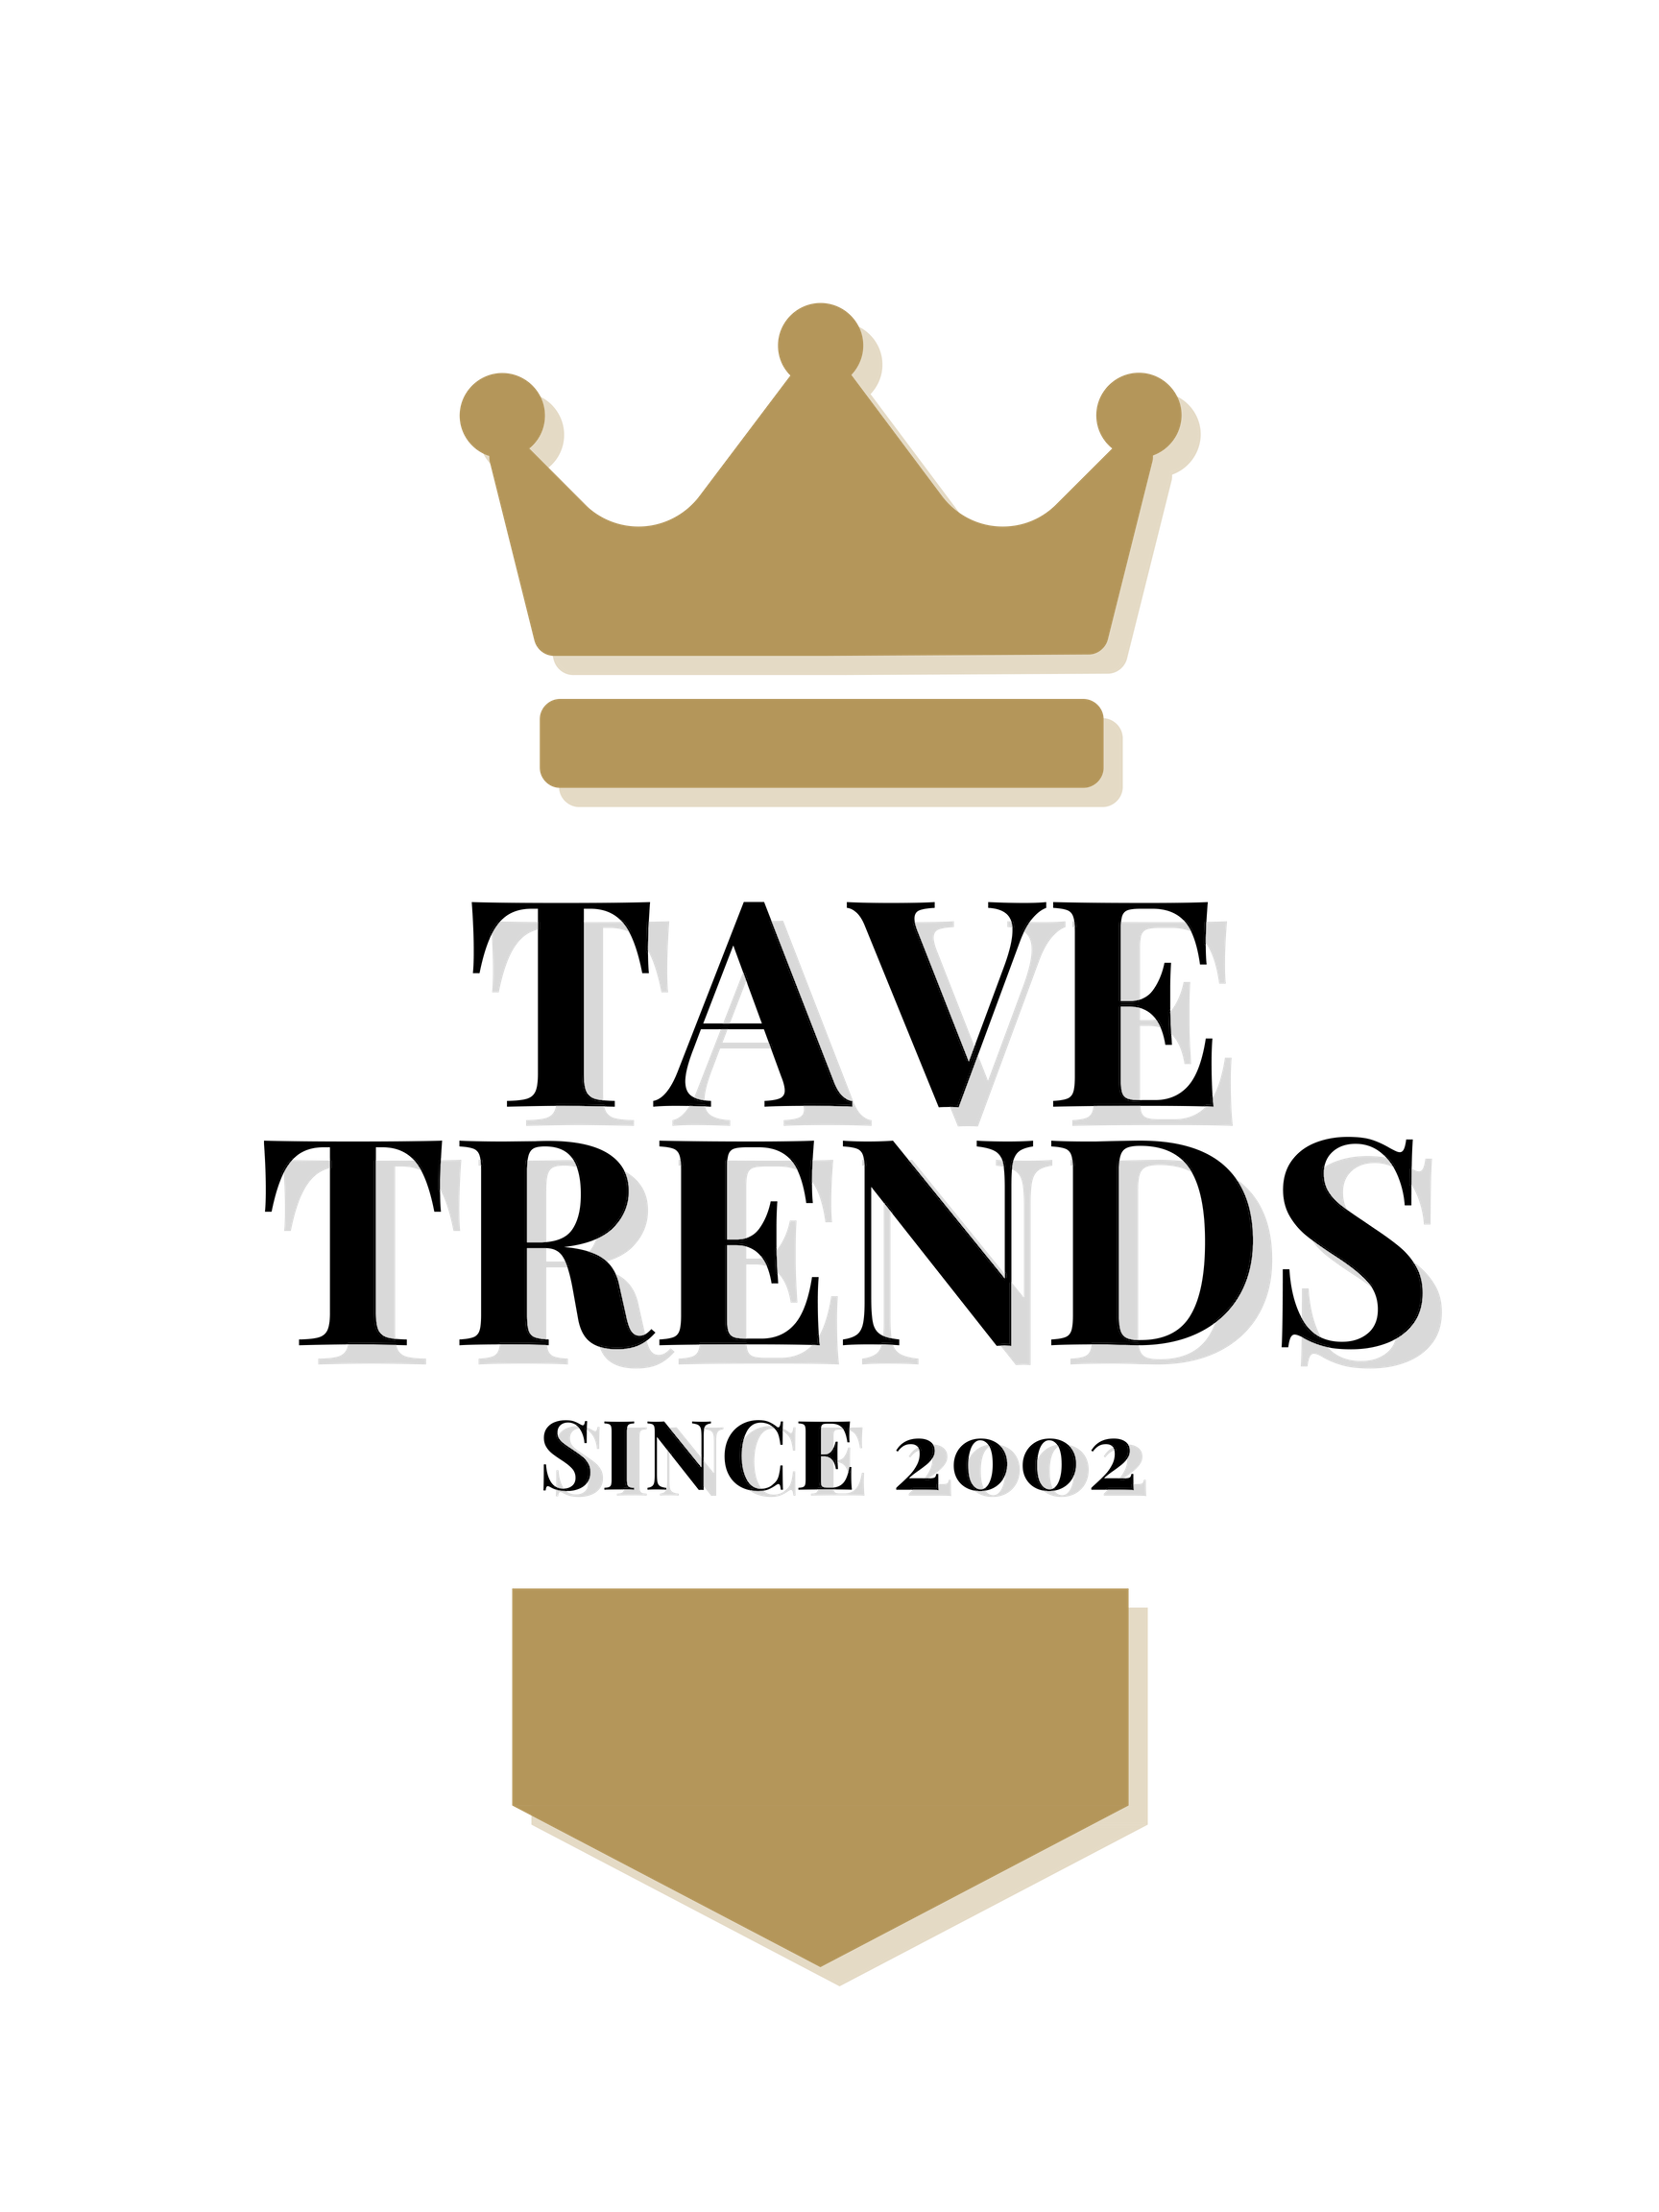 e7beb761 Tave Trends - Home